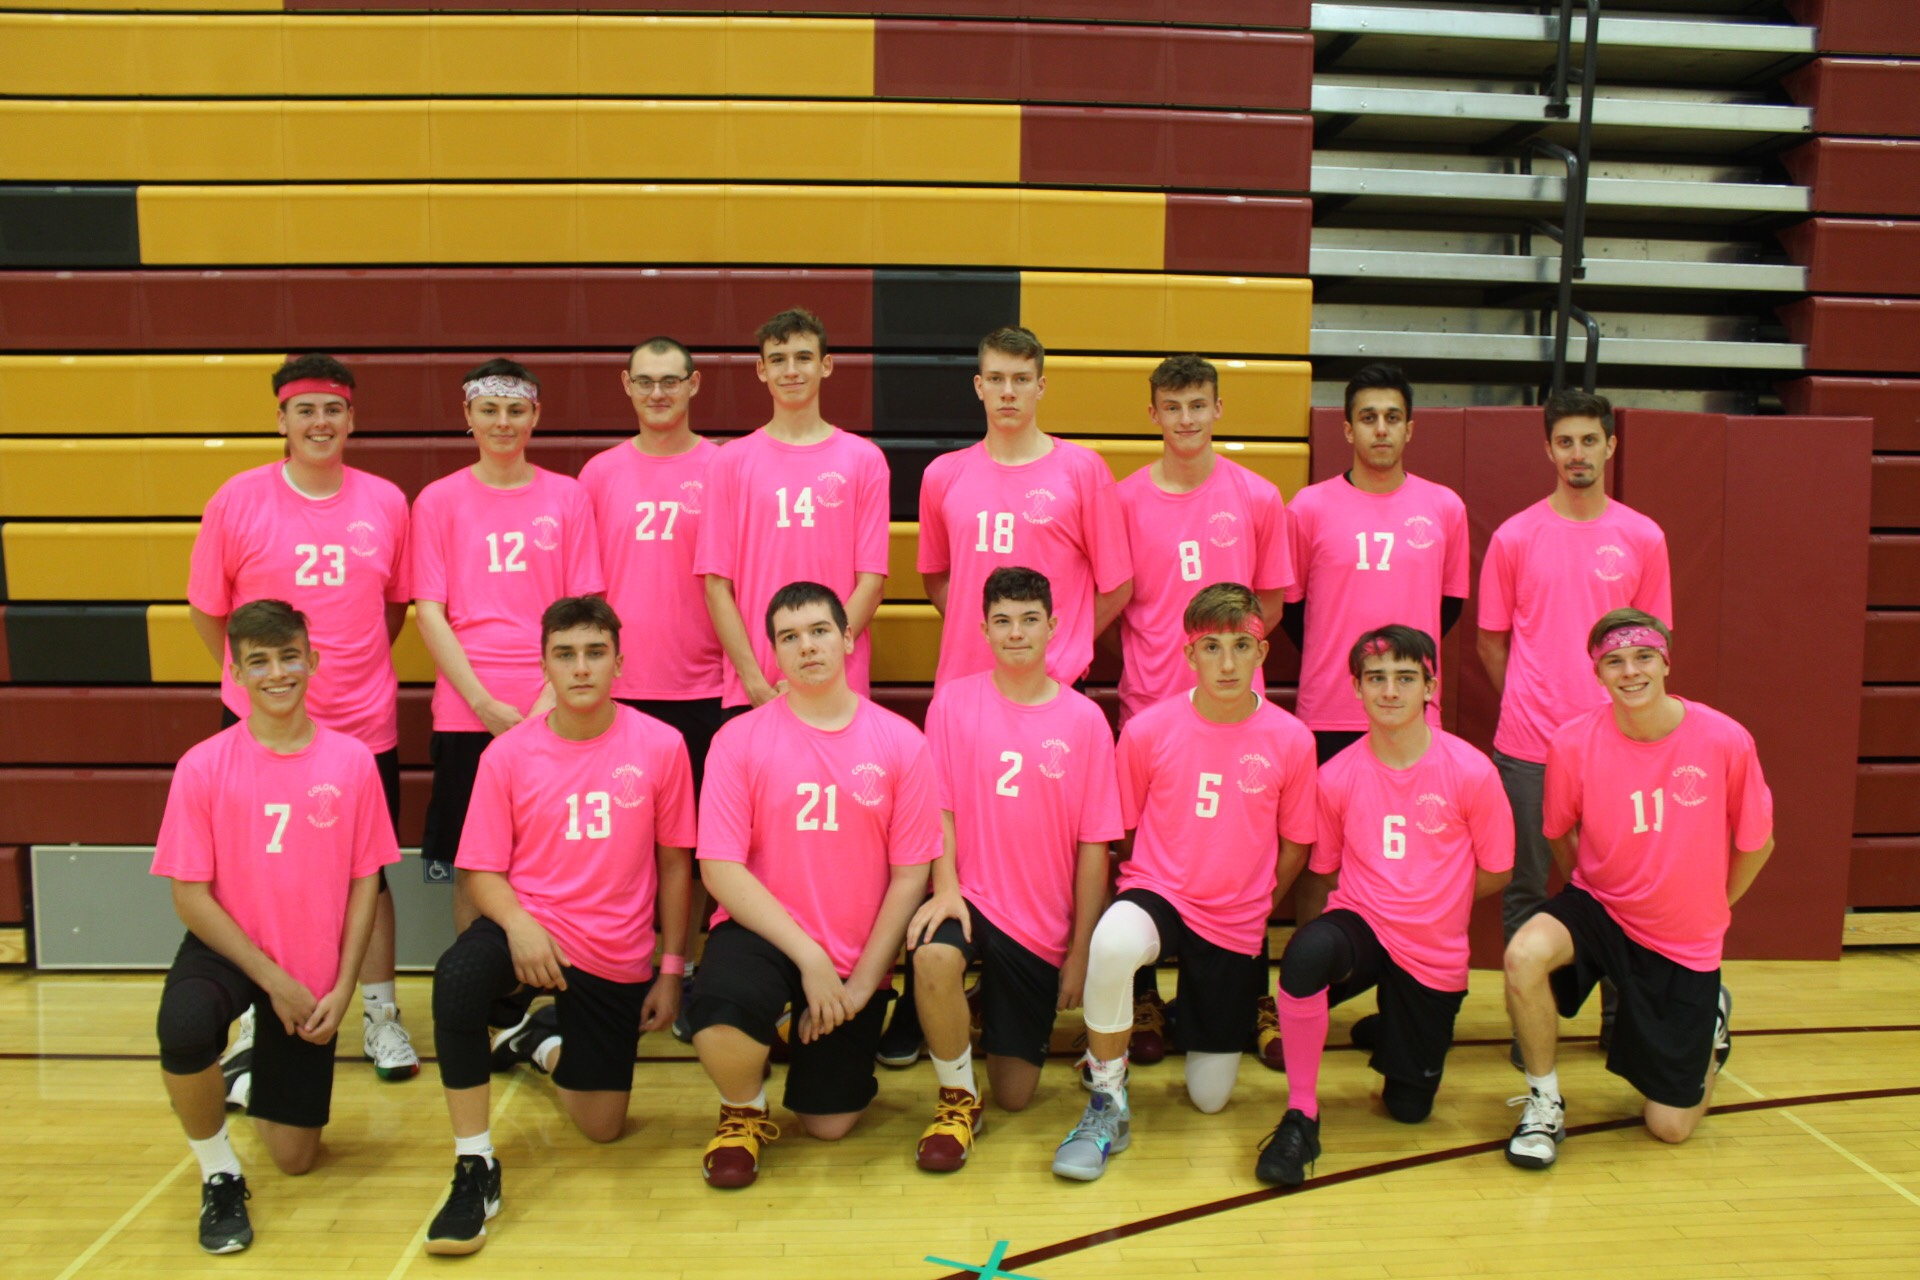 group photo of volleyball players in pink T shirts